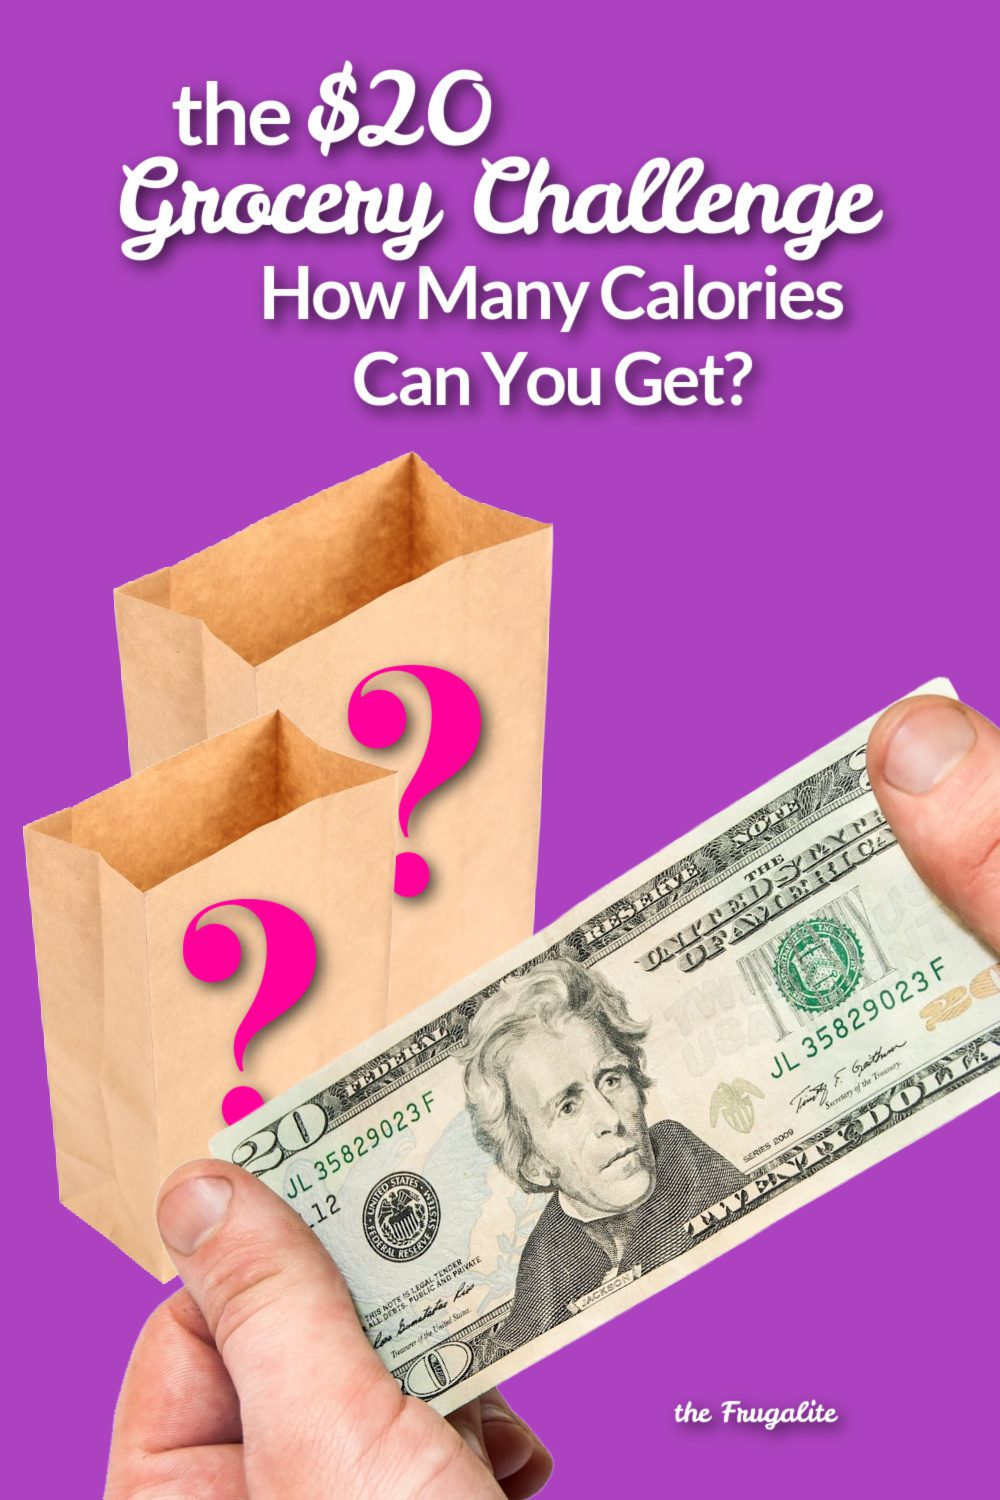 The $20 Grocery Challenge: How Many Calories Can You Get?